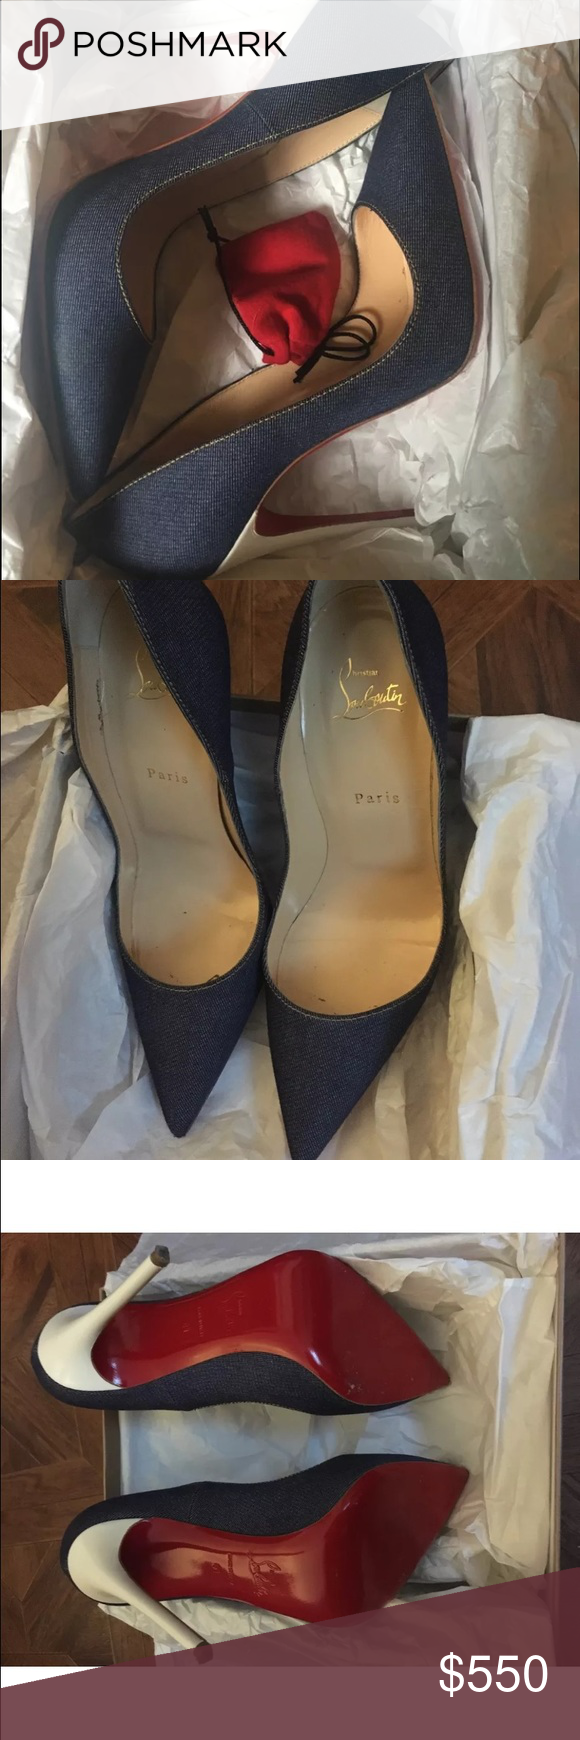 Christian louboutin denim heels Size 41 but fit a US 10. Like new shoe. Great deal... You will fall in love with this shoe Christian Louboutin Shoes Heels